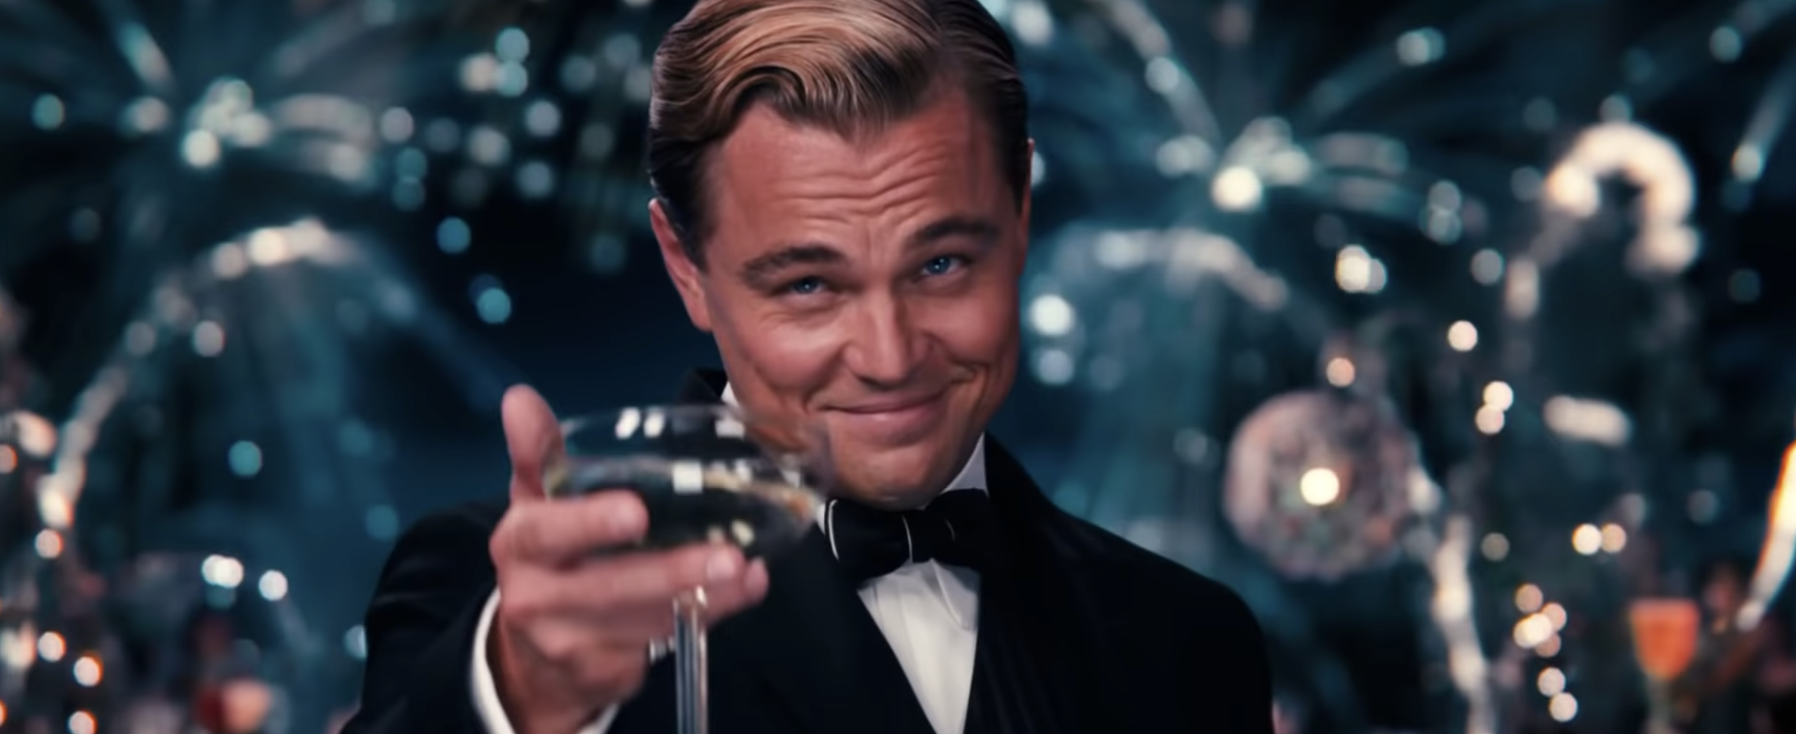 Jay Gatsby cheersing his glass to Nick.